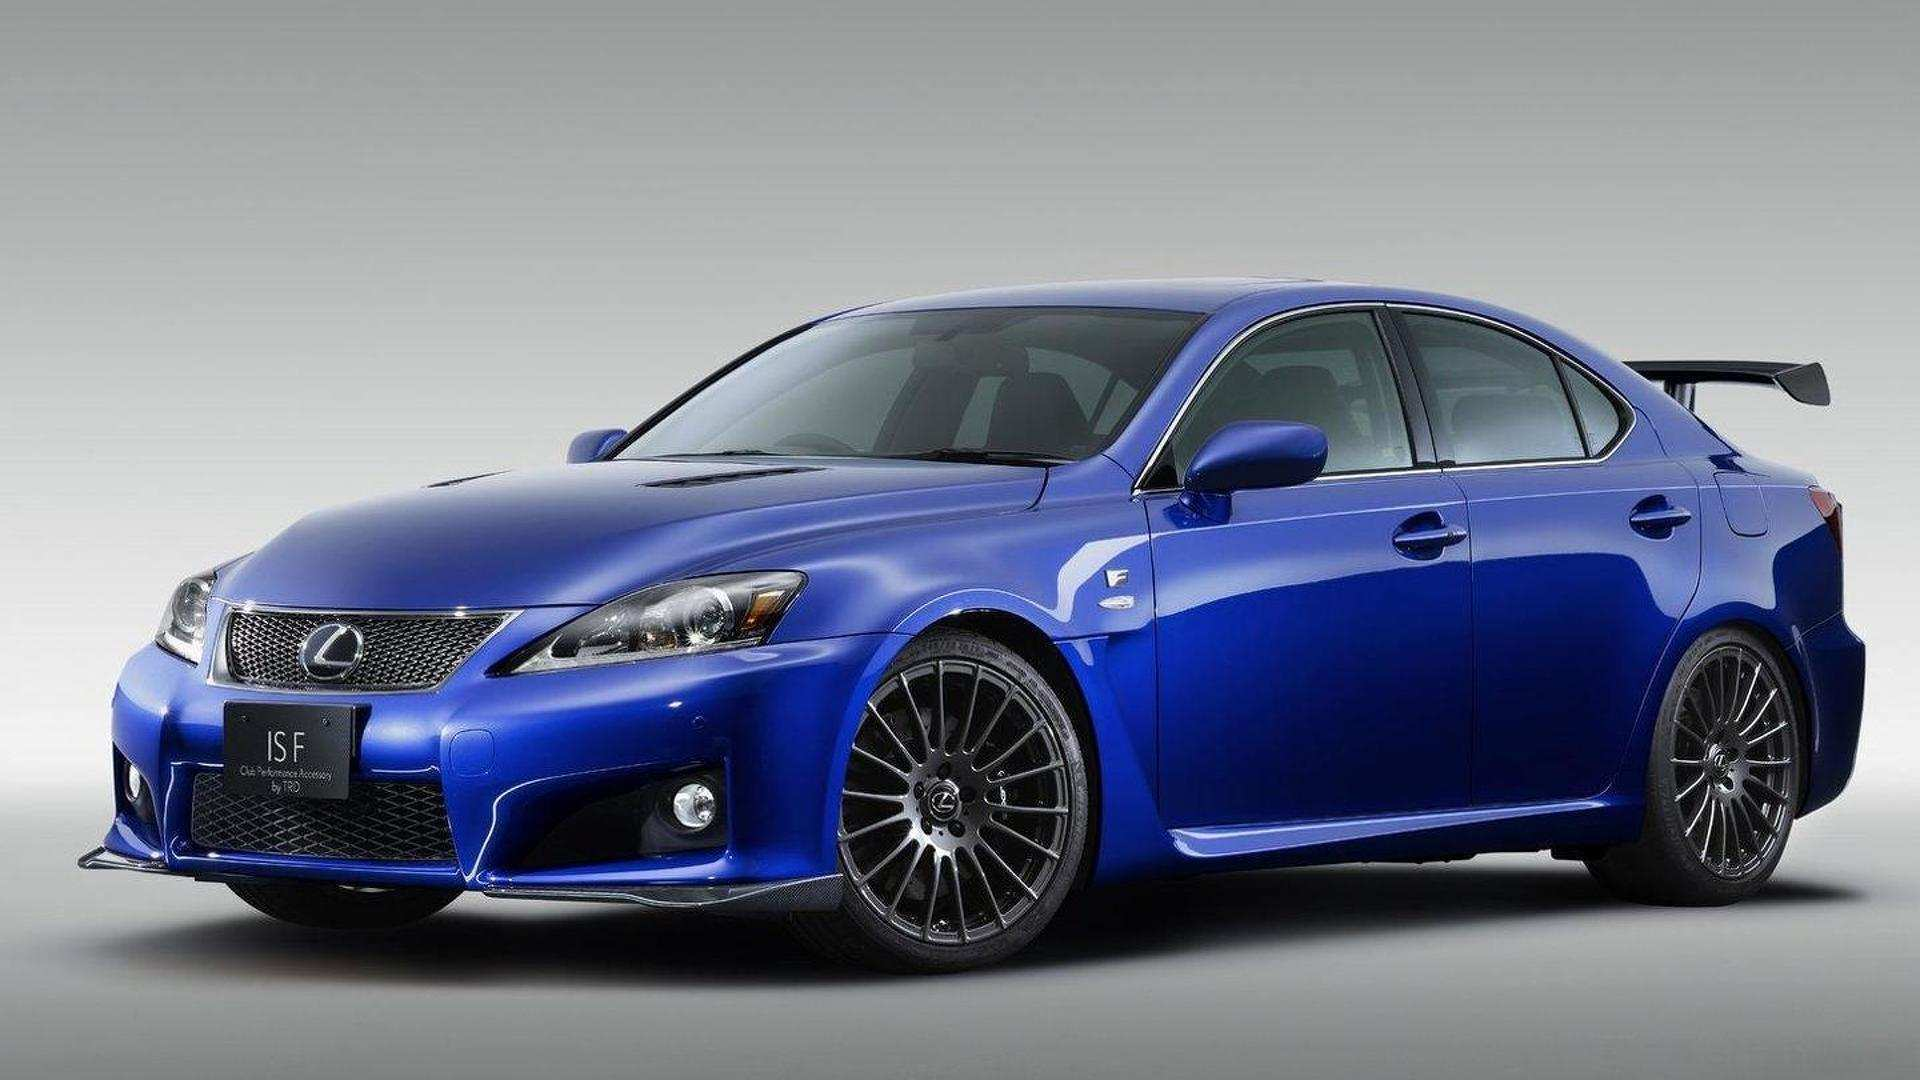 79 Gallery of 2020 Lexus Isf Prices with 2020 Lexus Isf